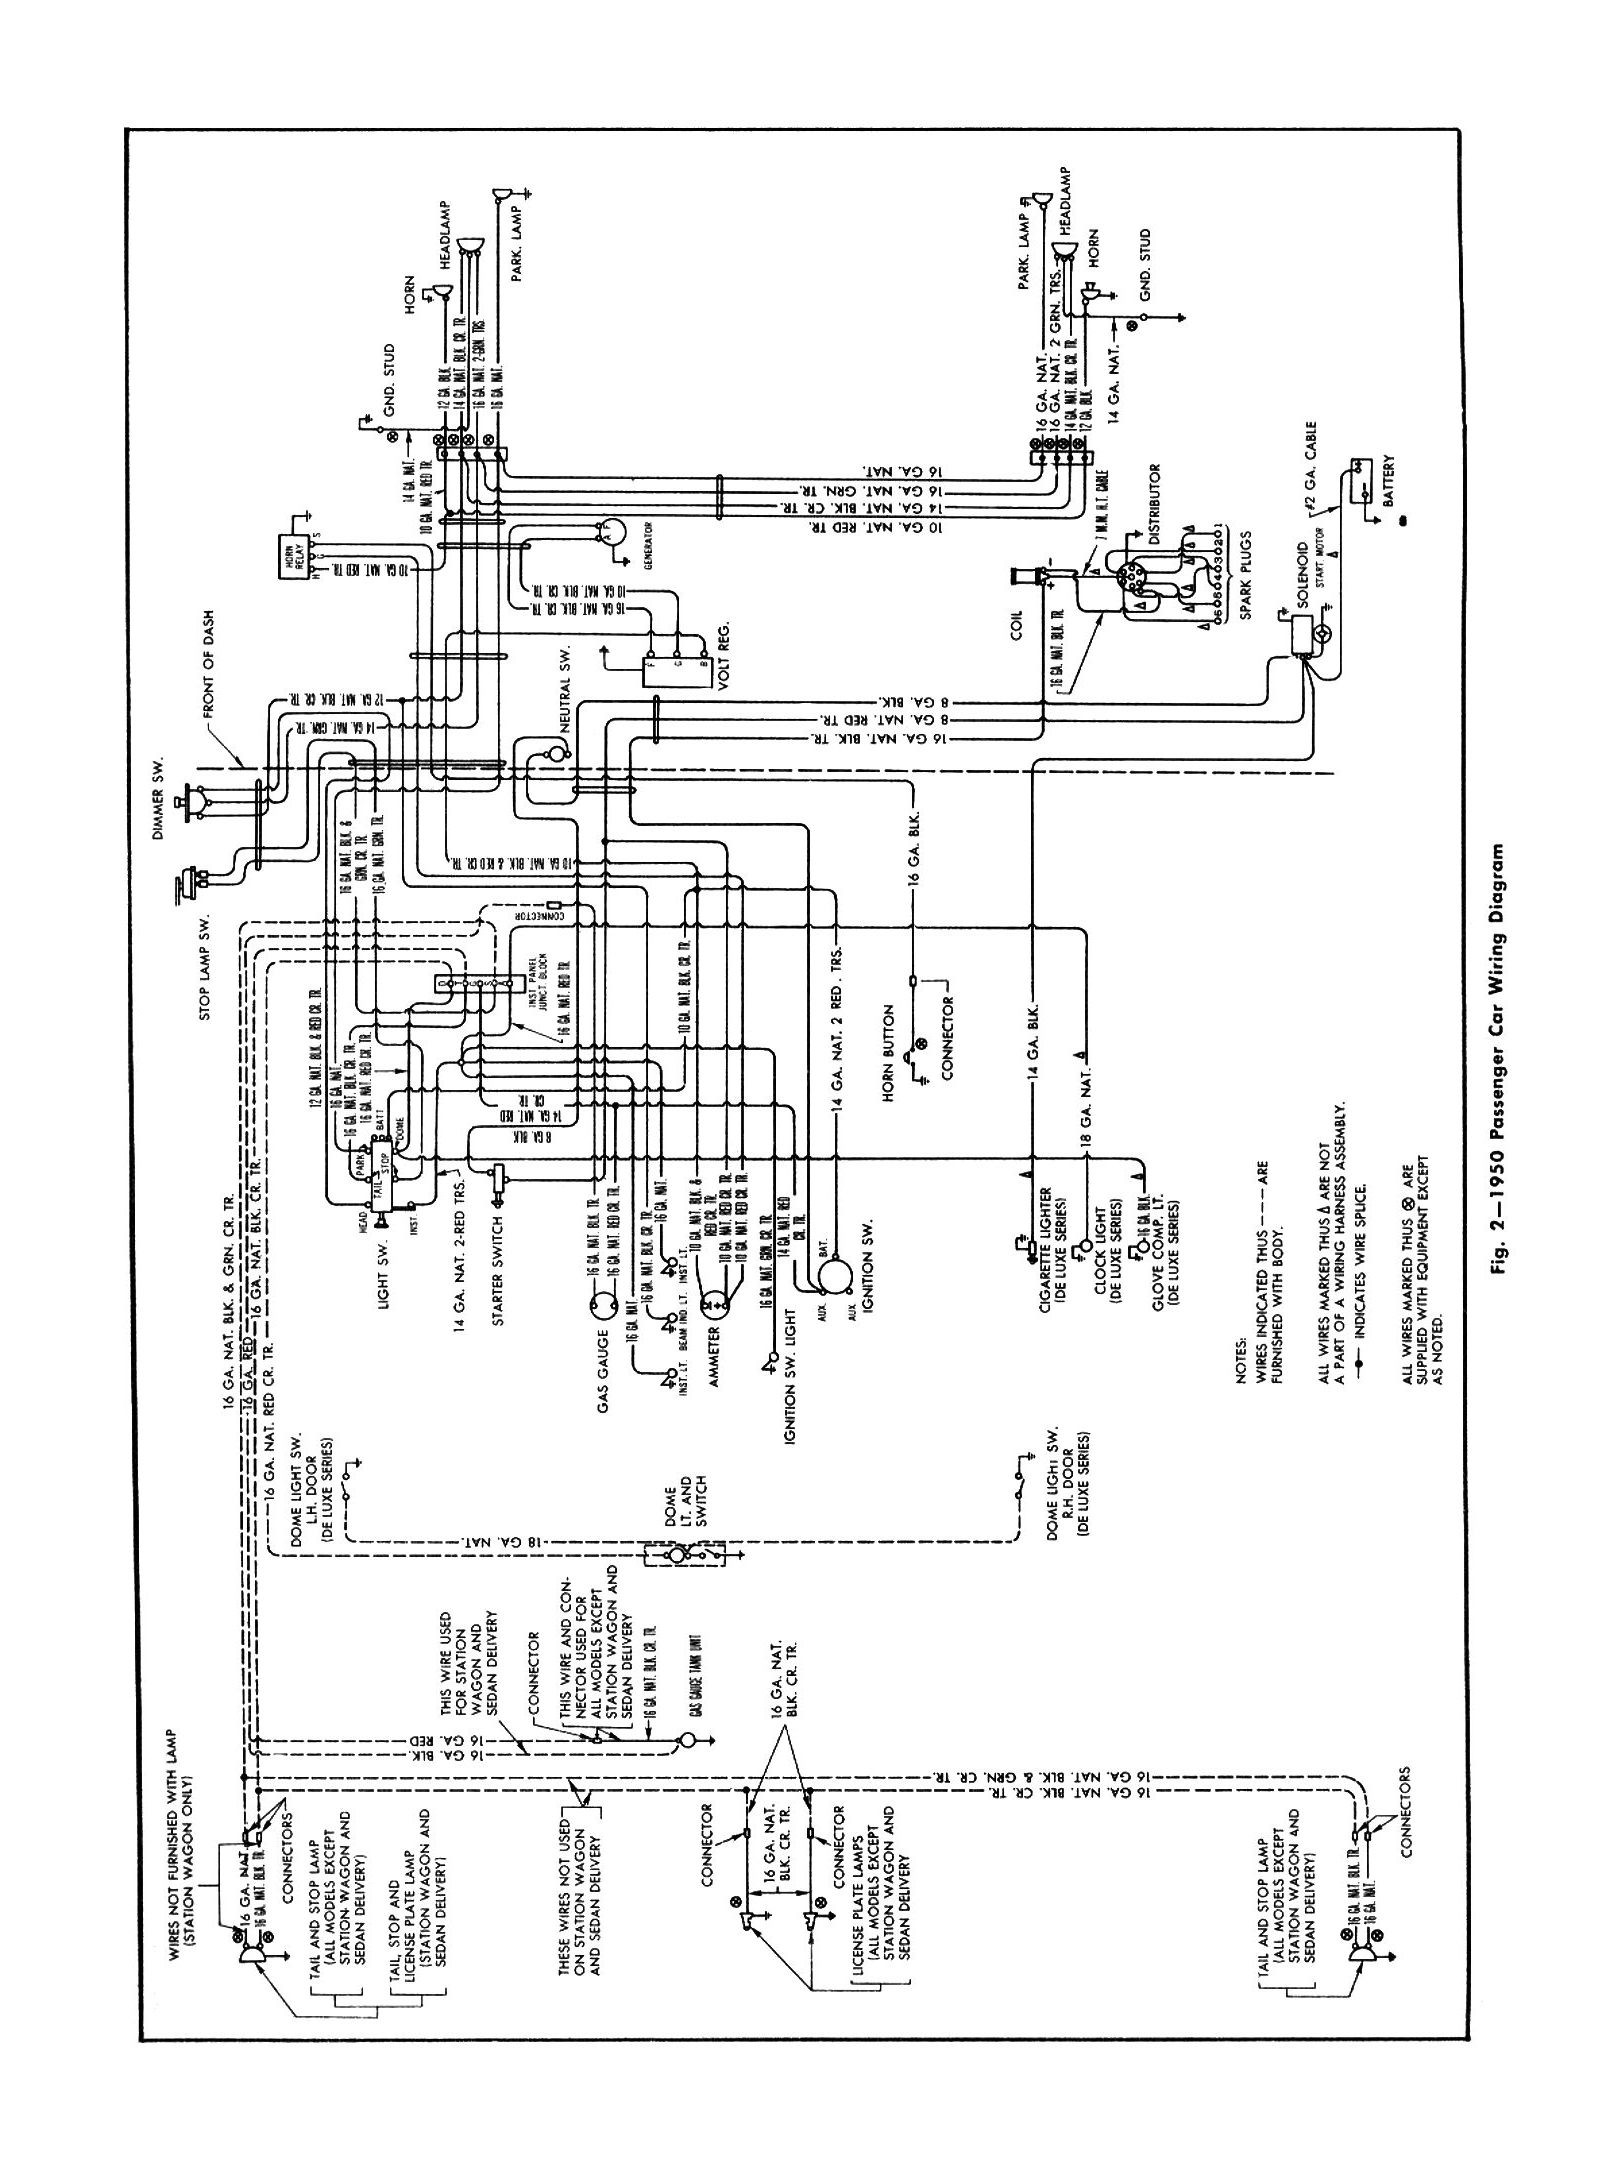 235 Chevy Wiring Diagram - Wiring Diagrams DataUssel